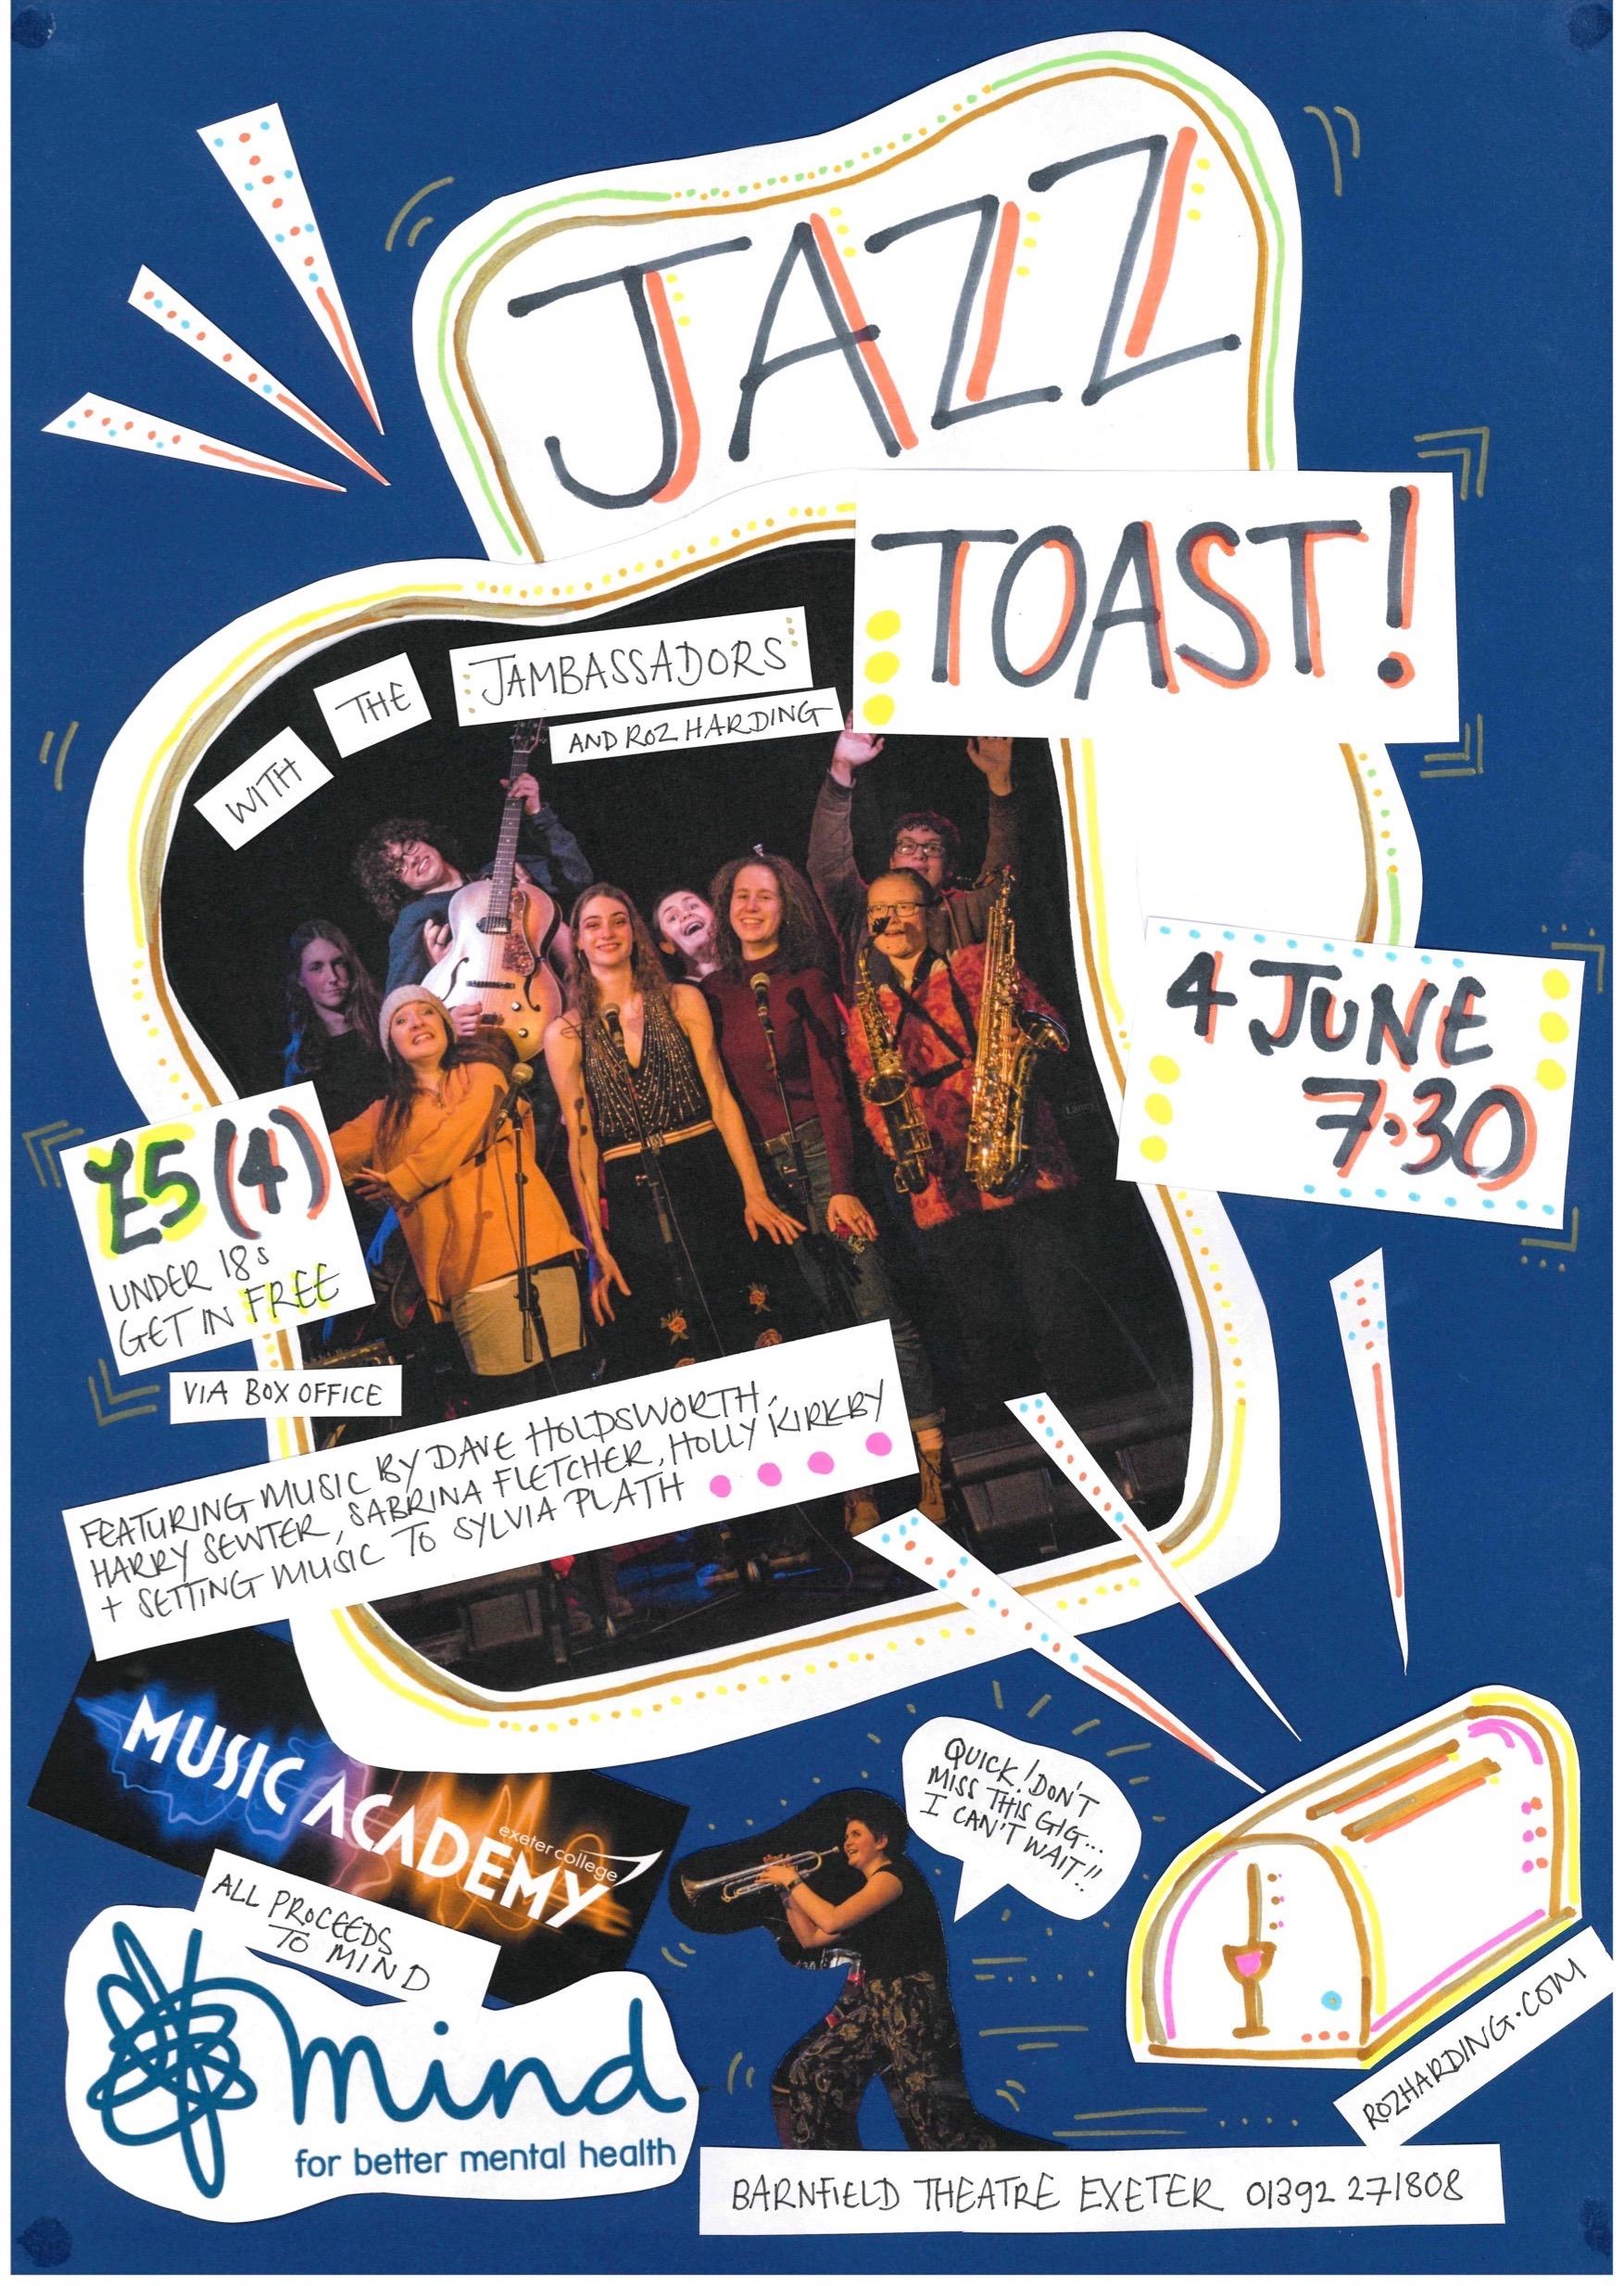 Jazz Toast Poster 2018.jpeg